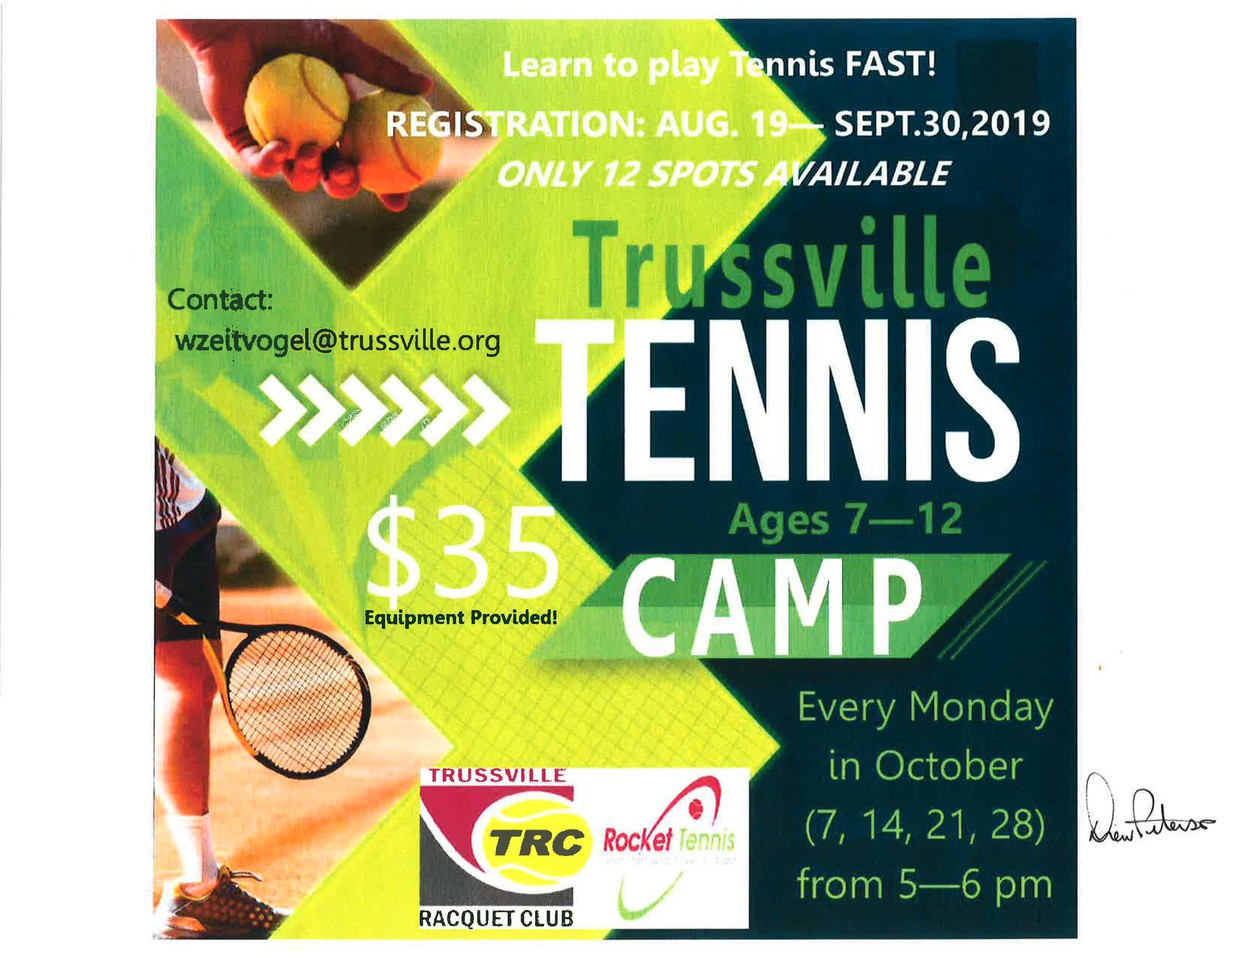 Trussville Tenis Camp - Ages 7-12 $35.00  Every Monday in October from 5:00 - 6:00 pm   Contact:  wzeitvogel@trussville.org